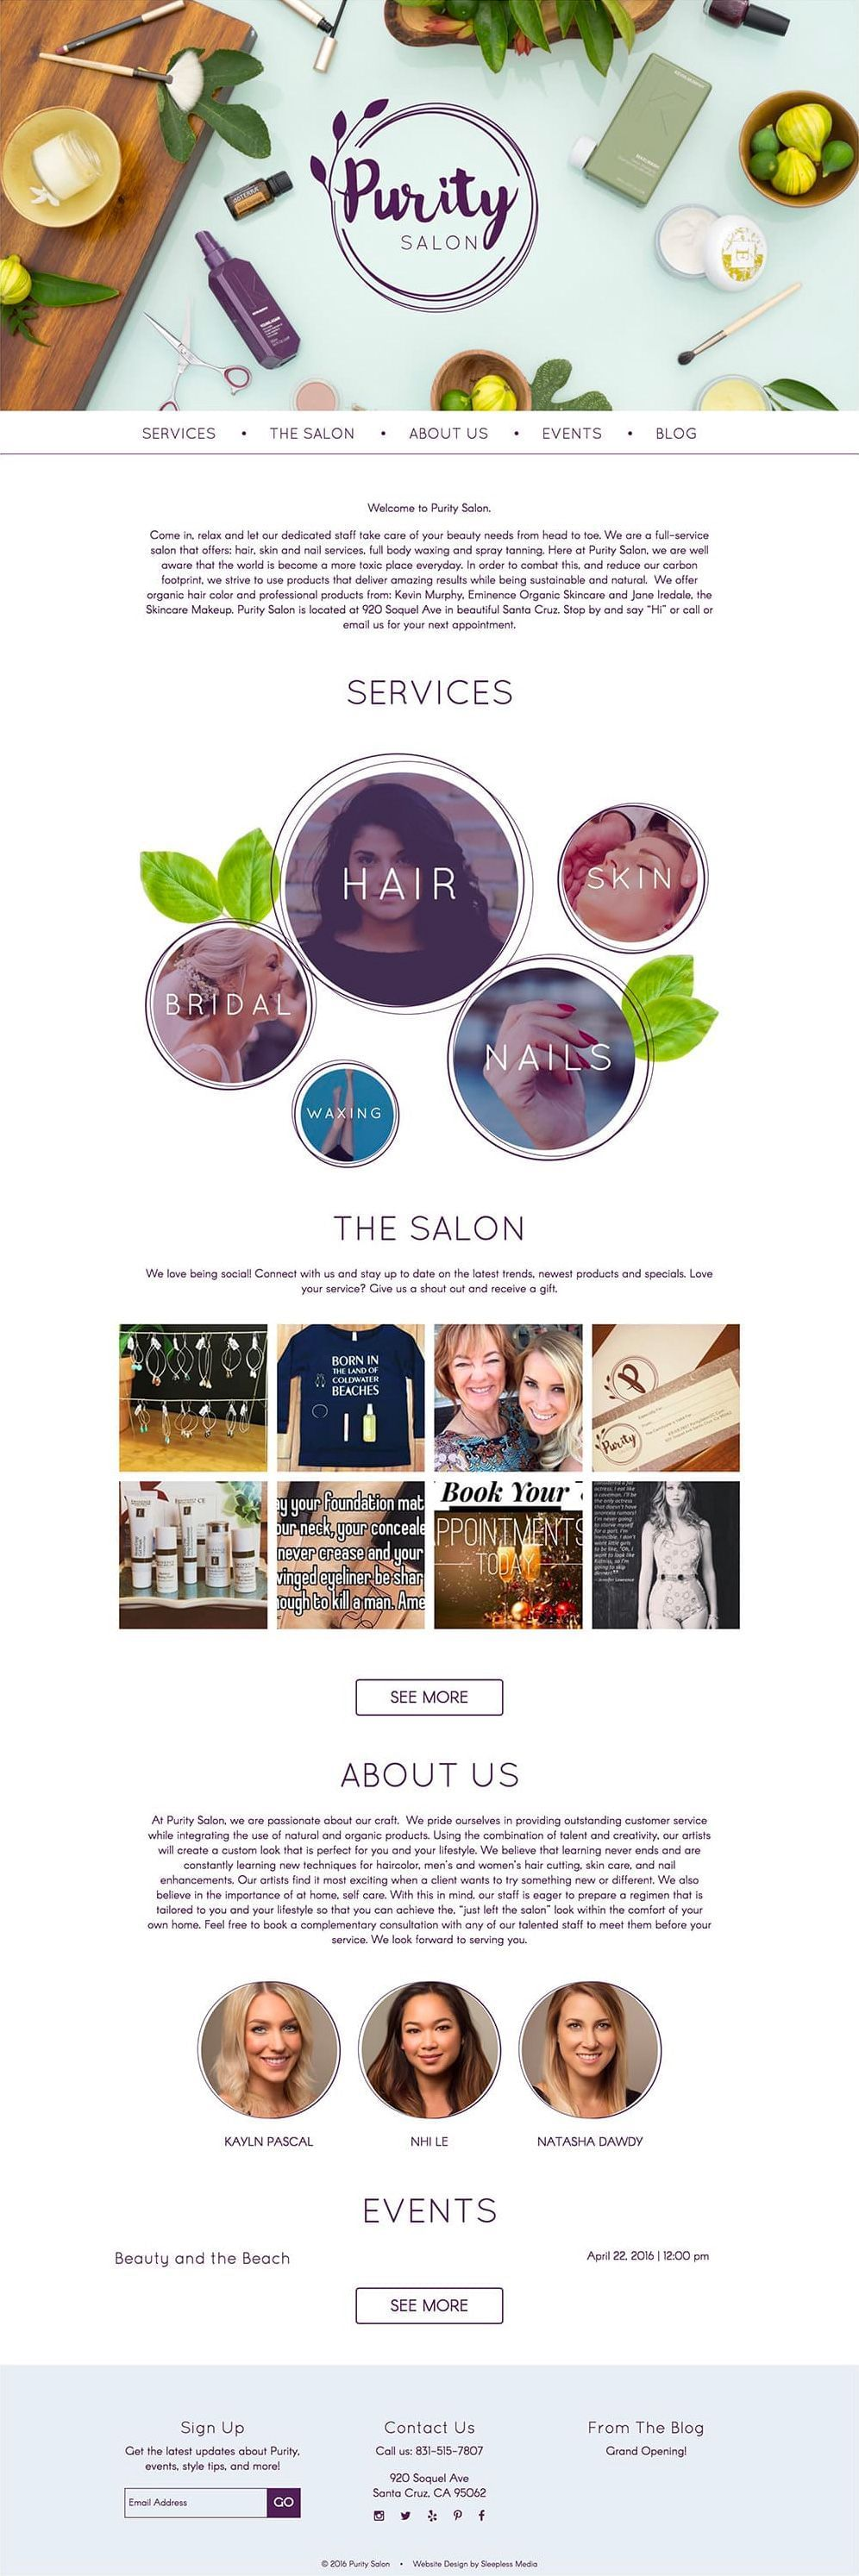 Purity Salon Homepage